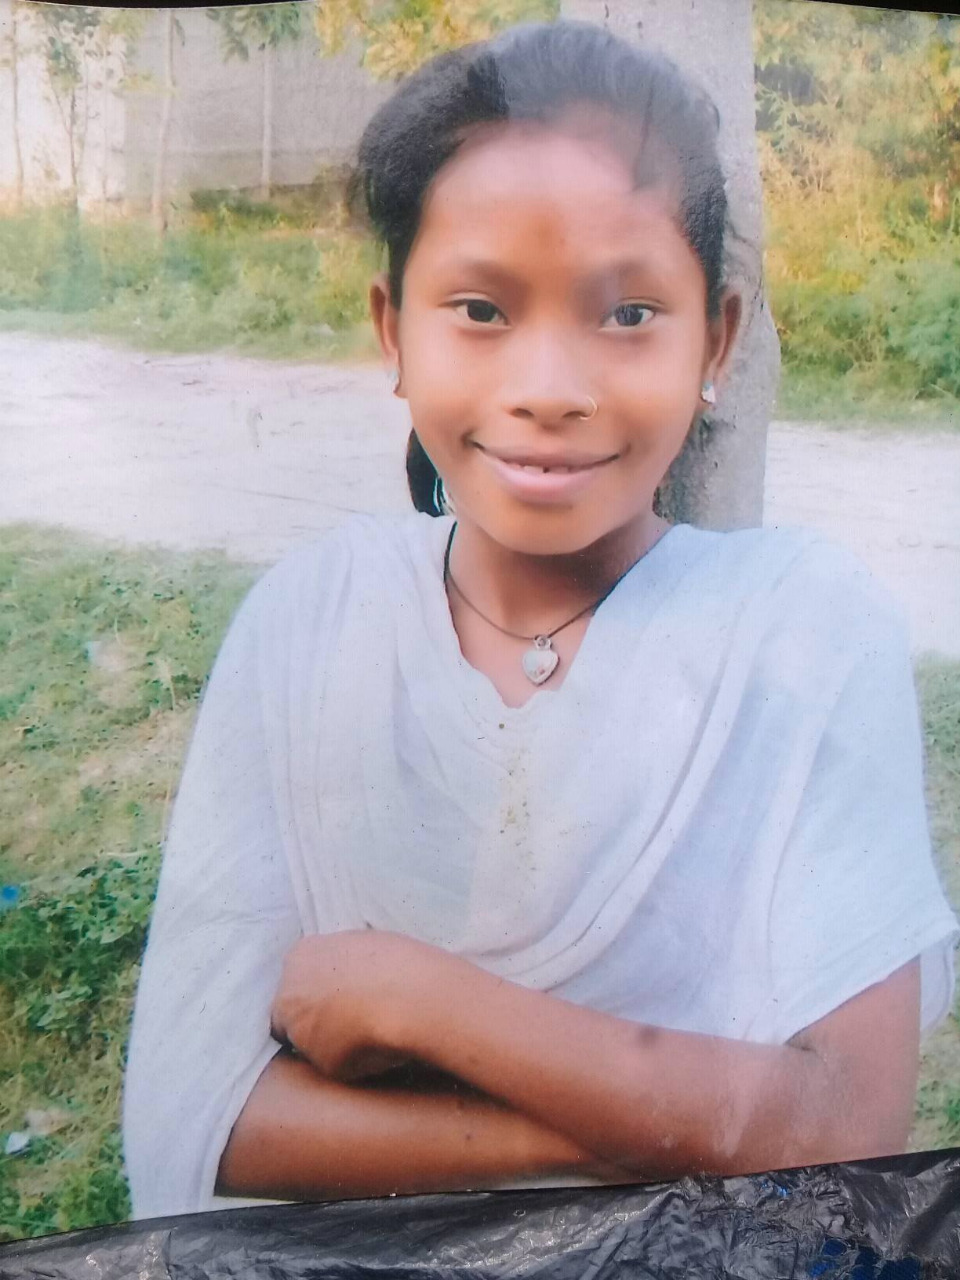 A recent photograph of Pramila Tharu. Credit: Courtesy of the family.